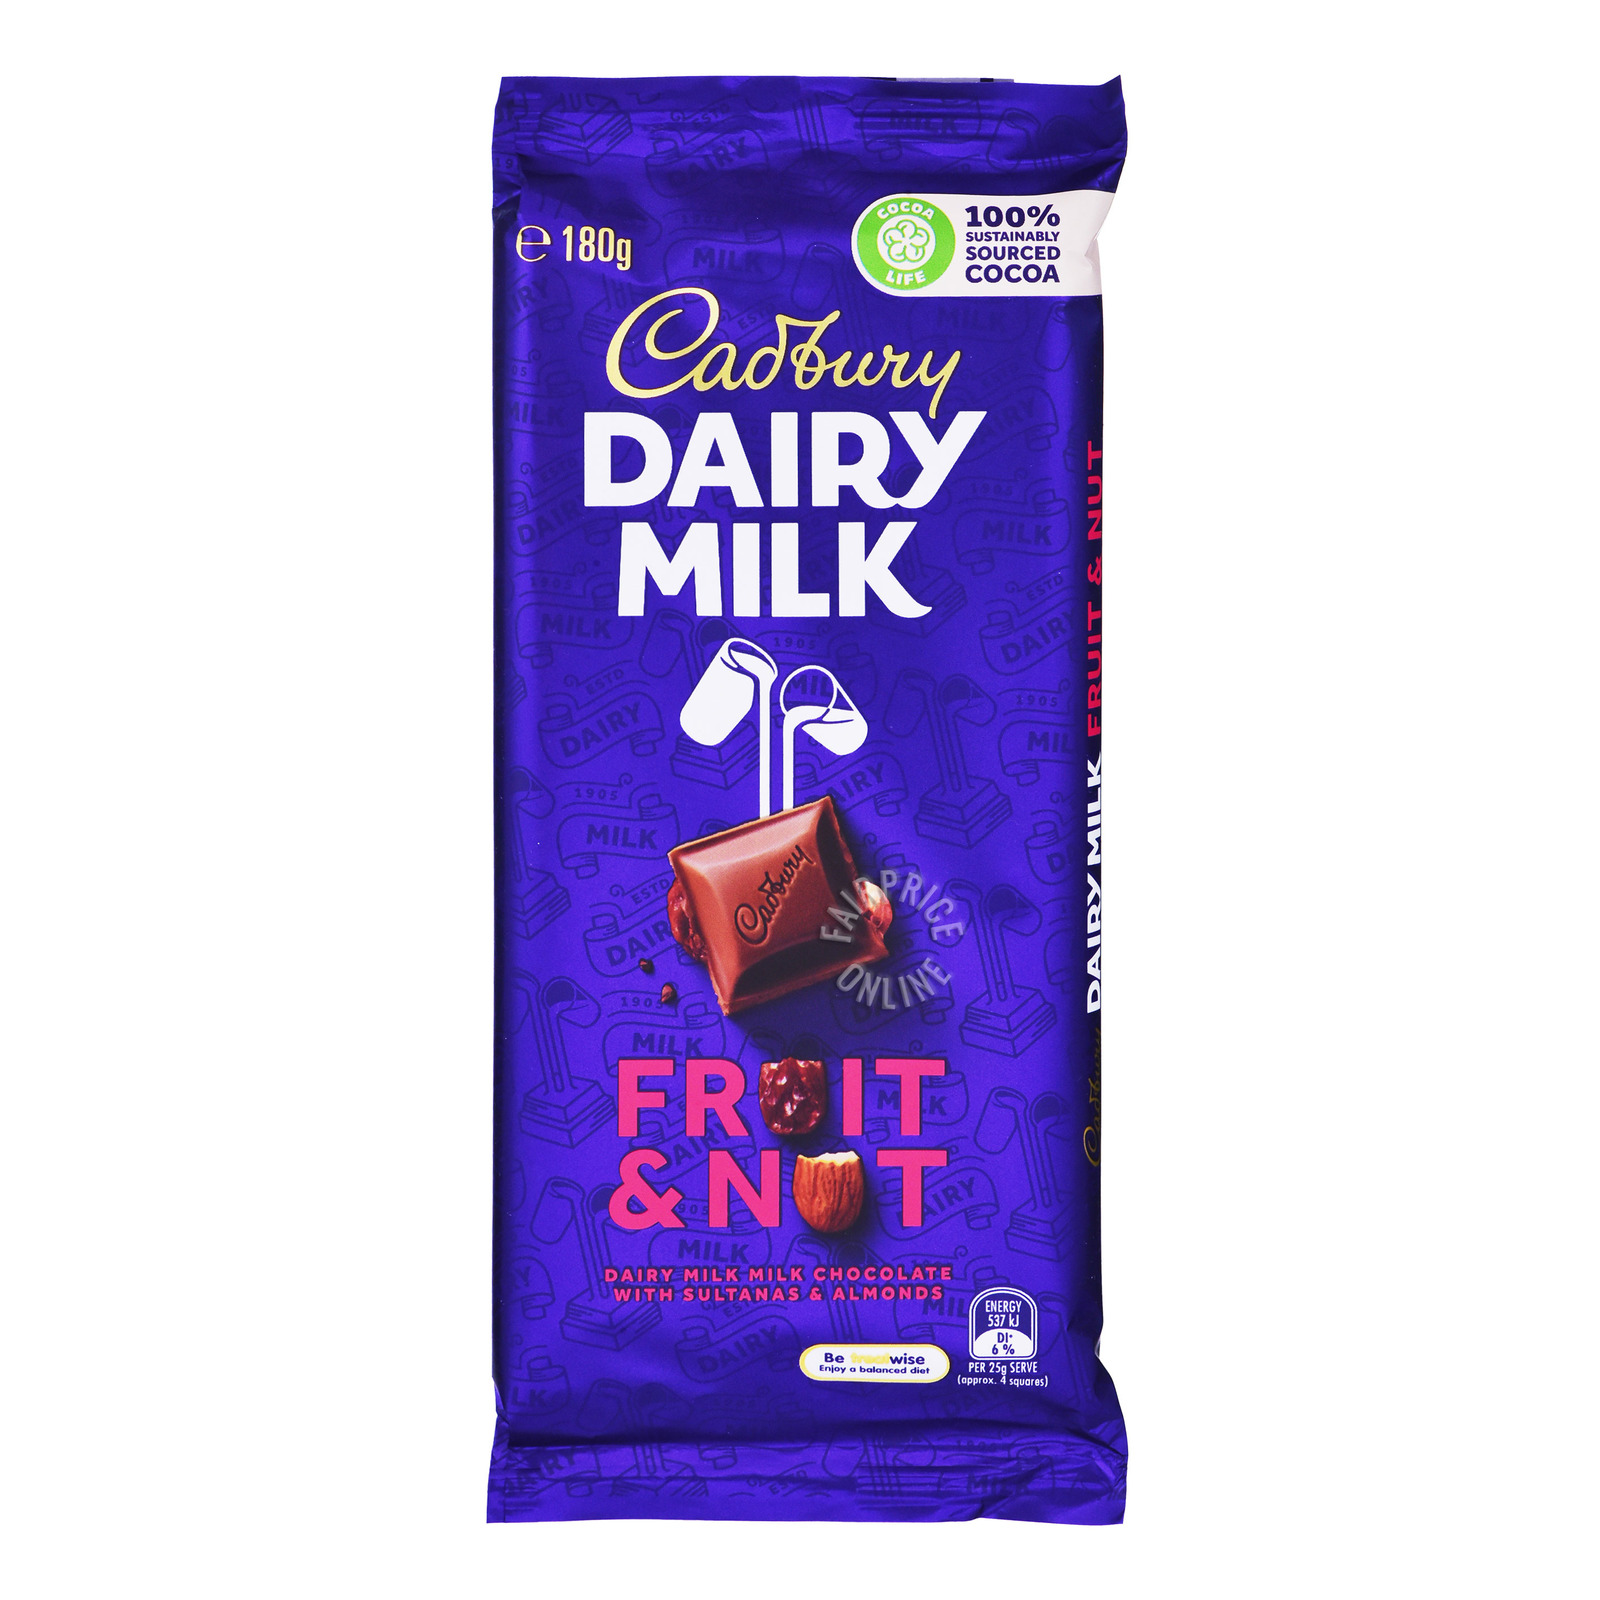 Cadbury Dairy Milk Chocolate Block - Fruit & Nut